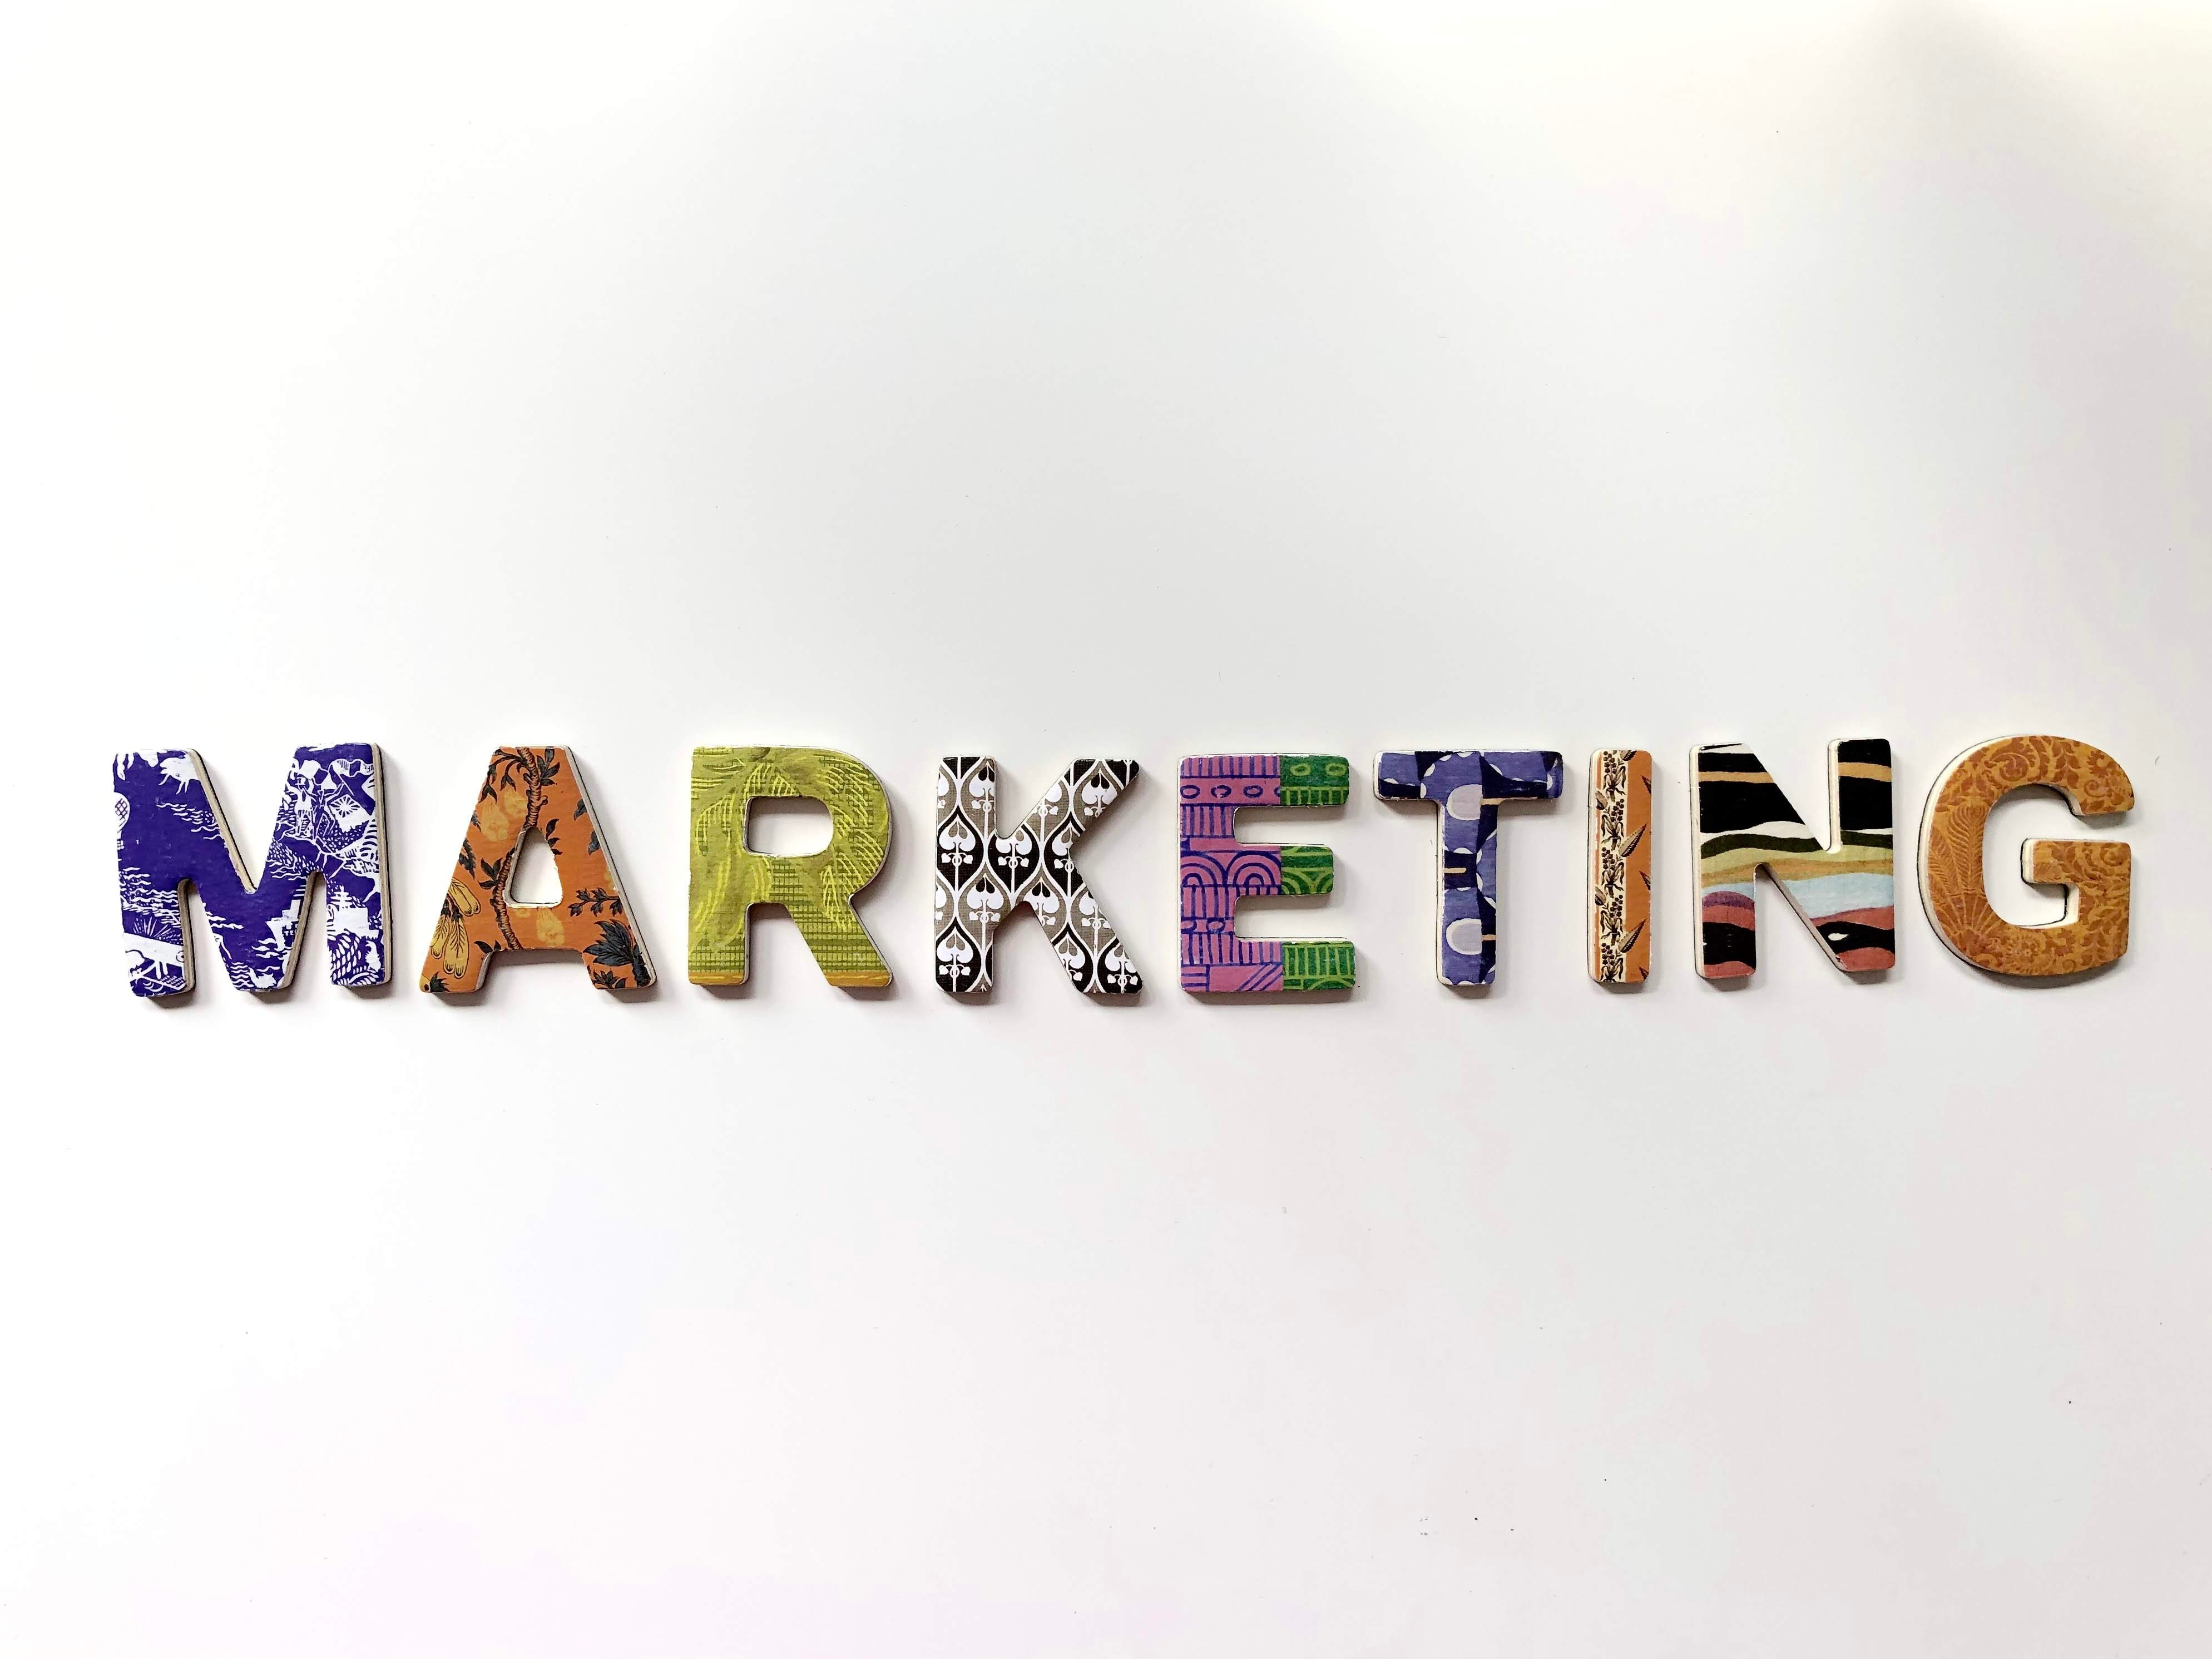 marketing on white background